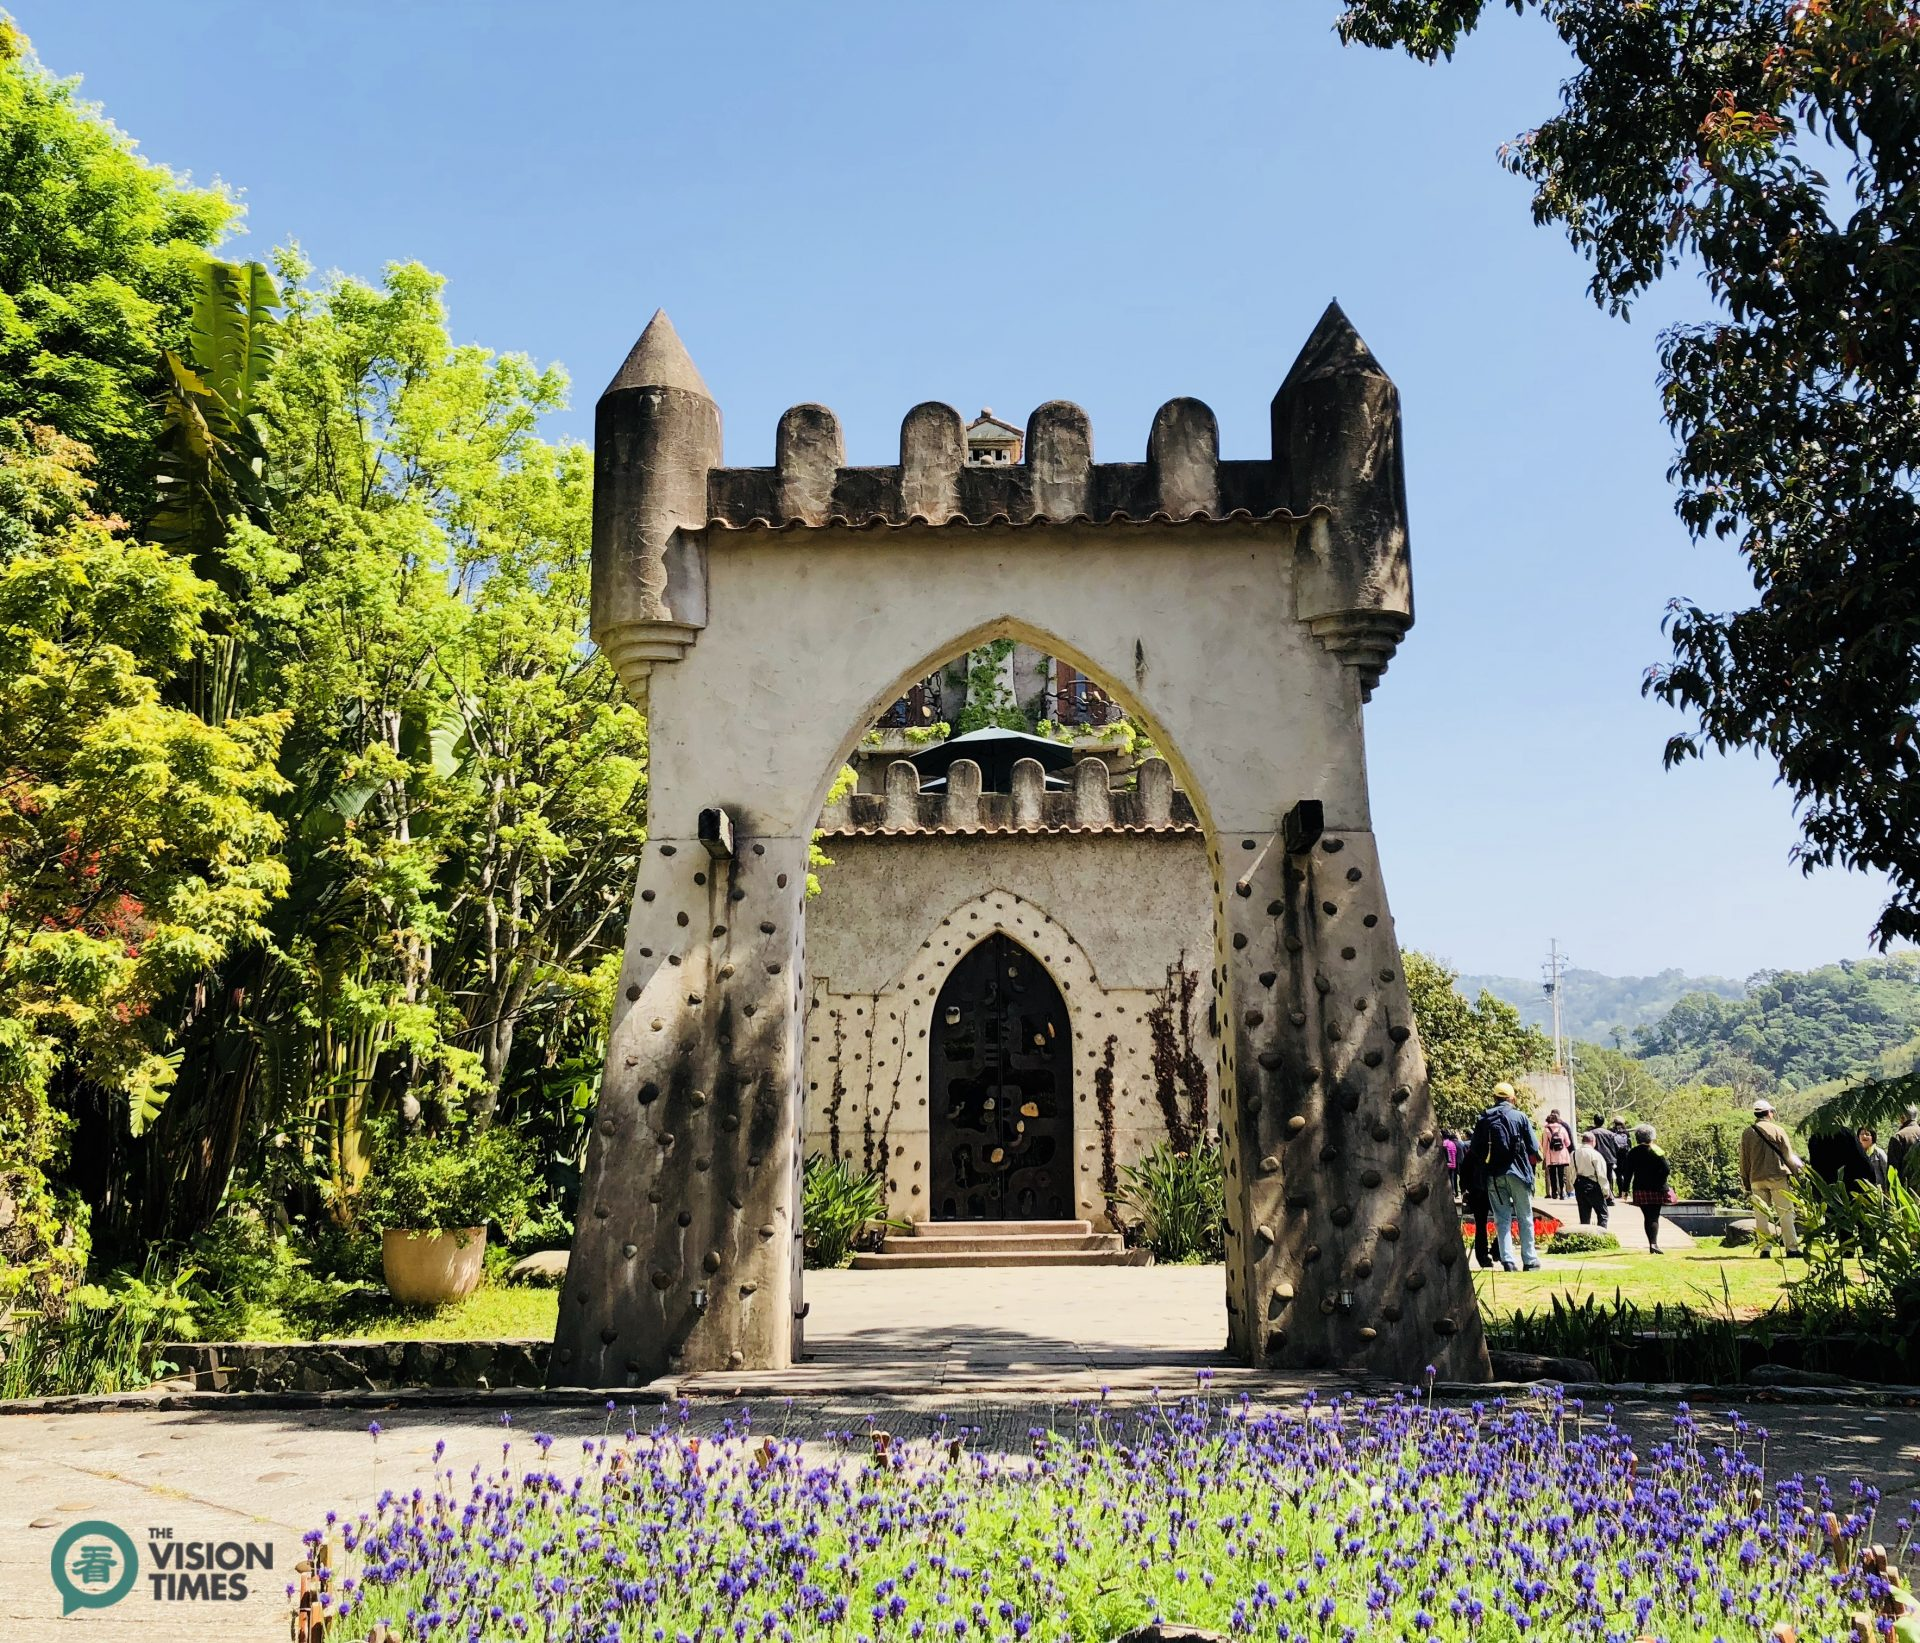 The entrance of Chateau in the Air (Image: Billy Shyu / Vision Times)